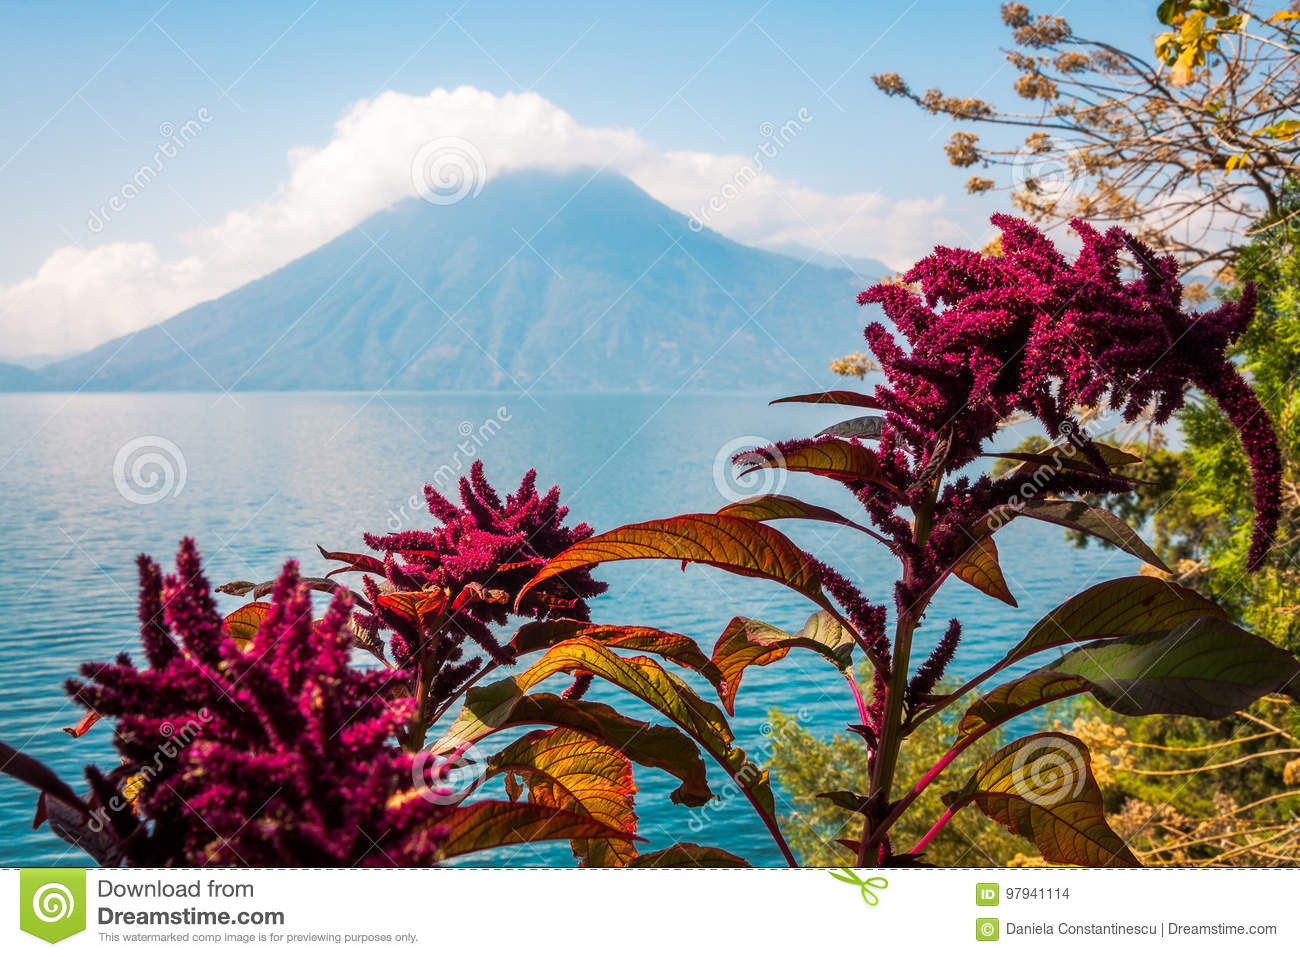 Lake, flowers and volcano in Guatemala